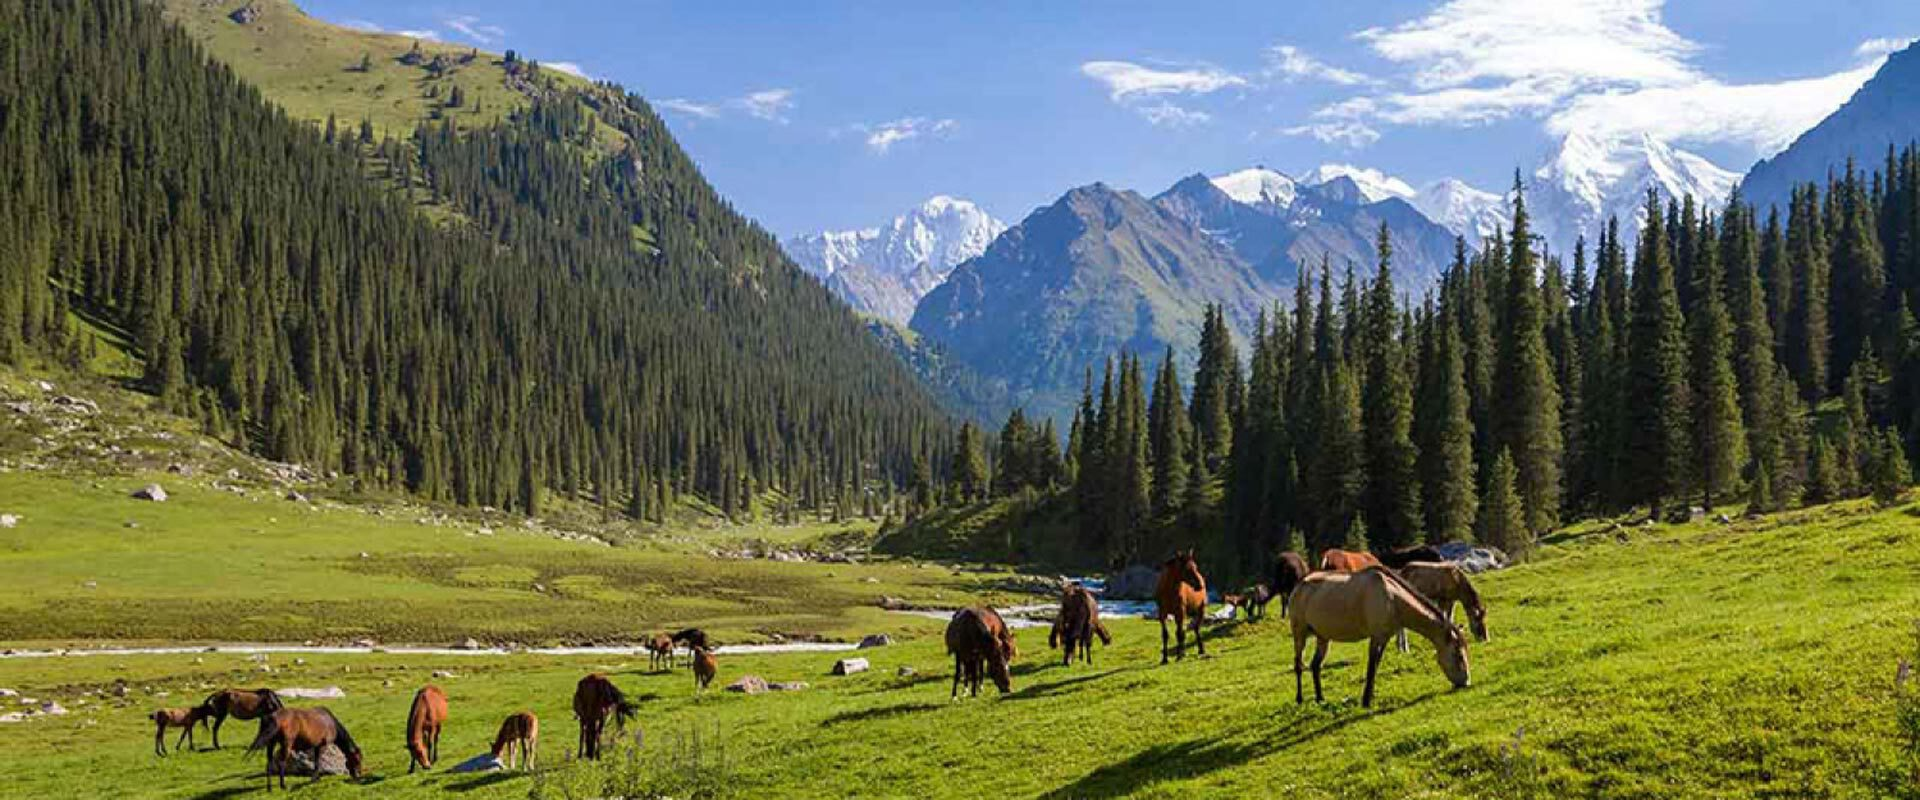 Amazing Landscapes of Kyrgyzstan